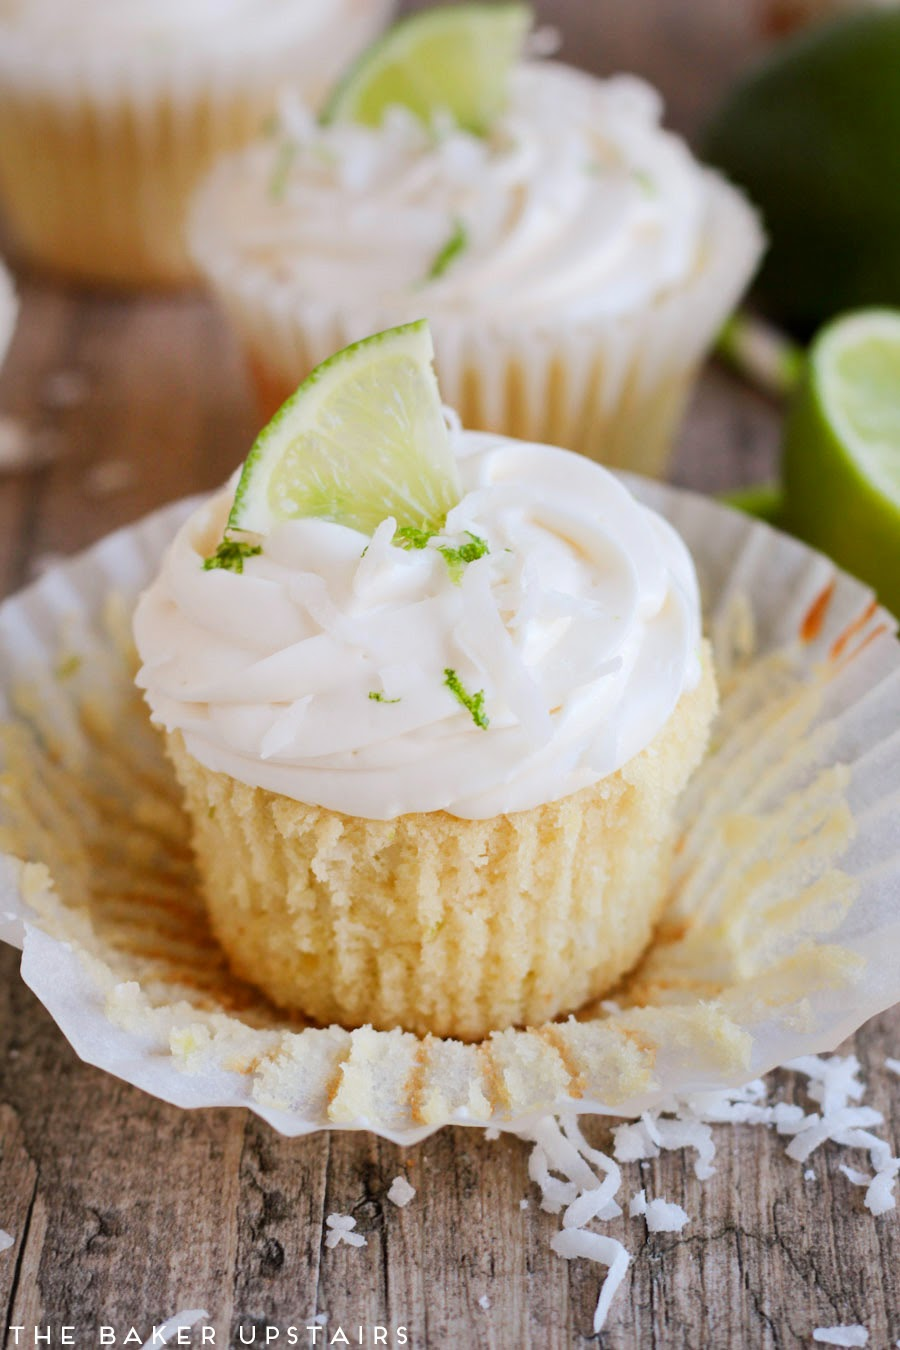 coconut lime cupcakes for the cupcakes zest of two limes